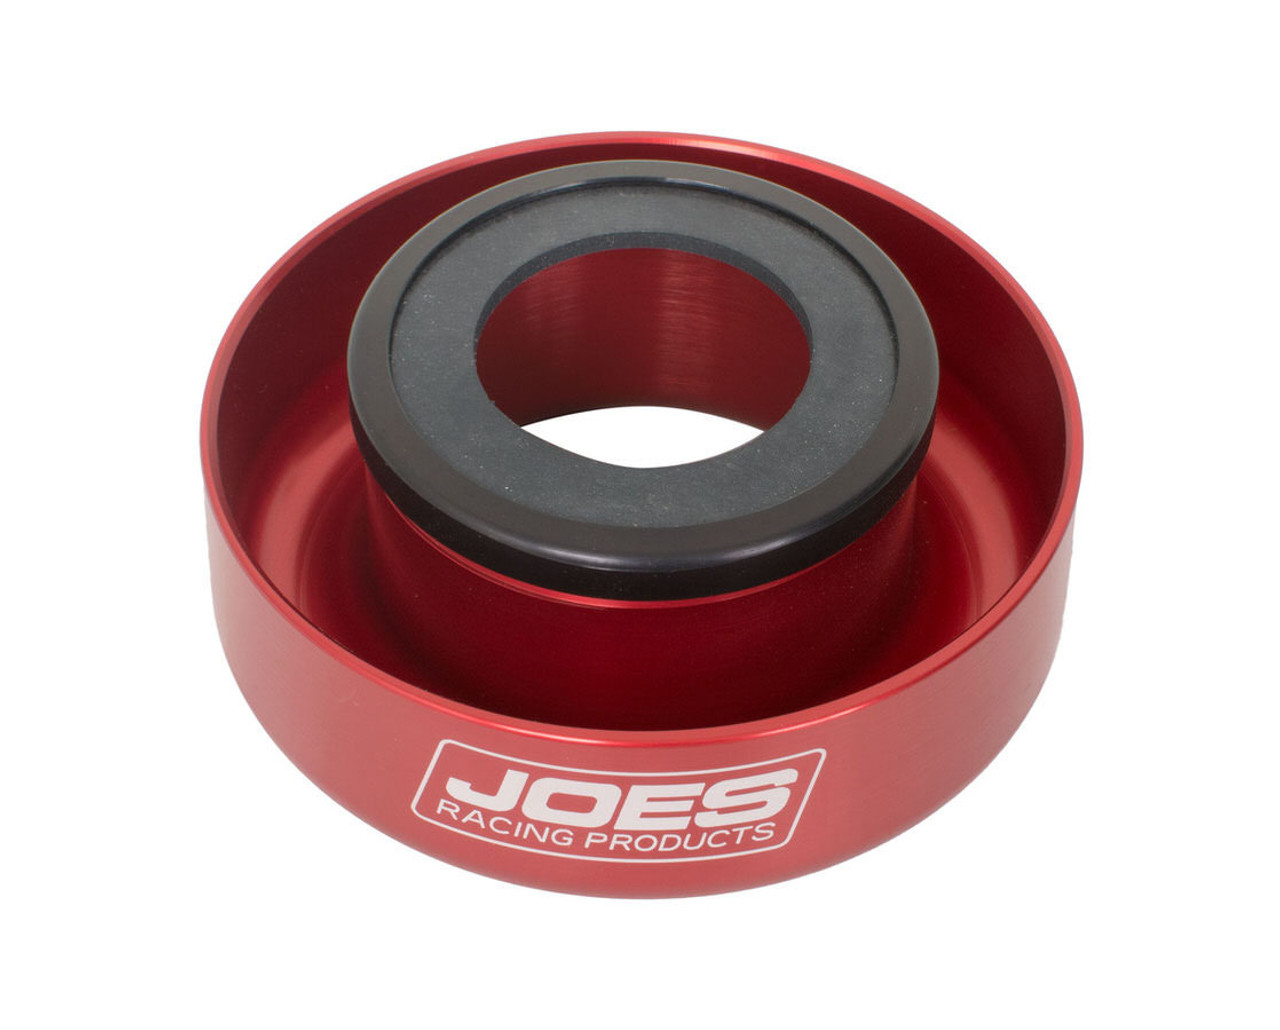 JOE's 19300 Shock Drip Cup, Aluminum, Red Anodized, 1-1/2 to 2-1/8 in Shocks